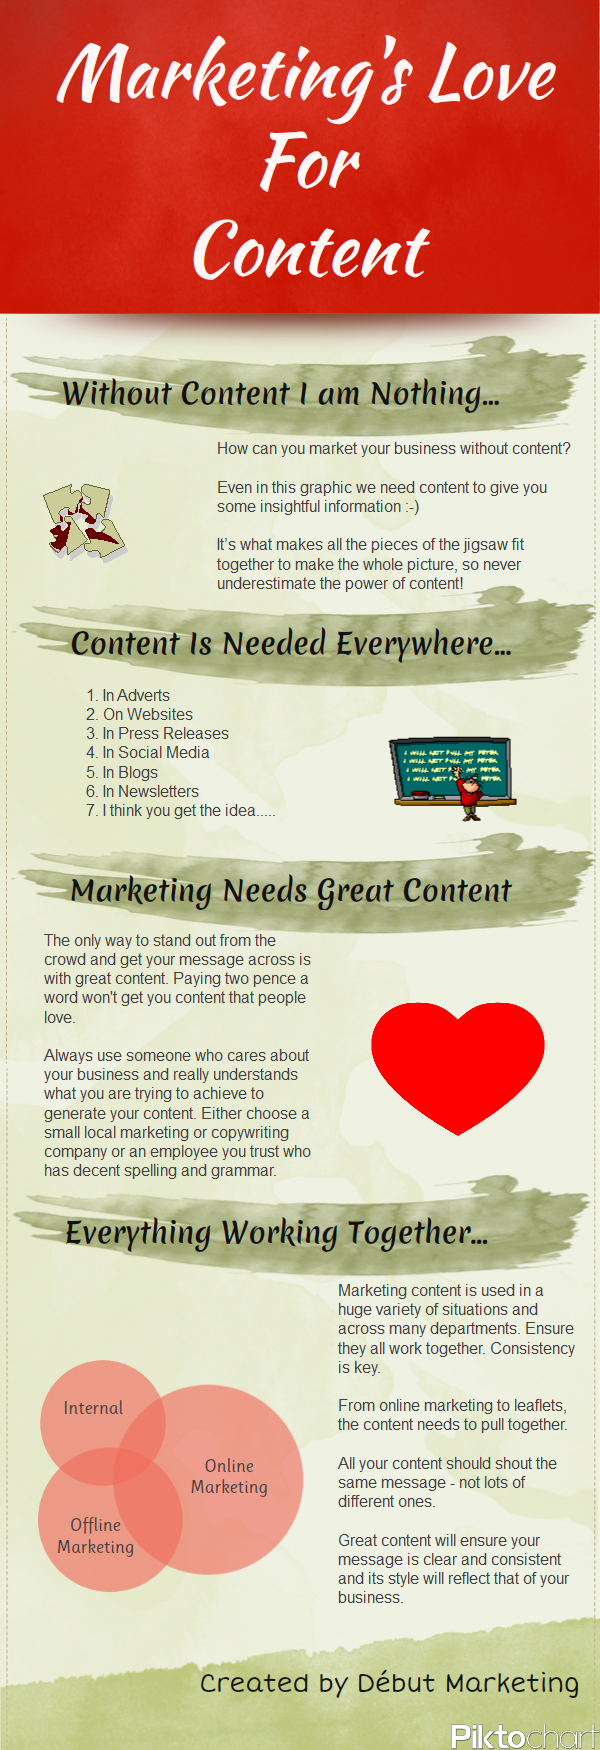 copy and content for marketing